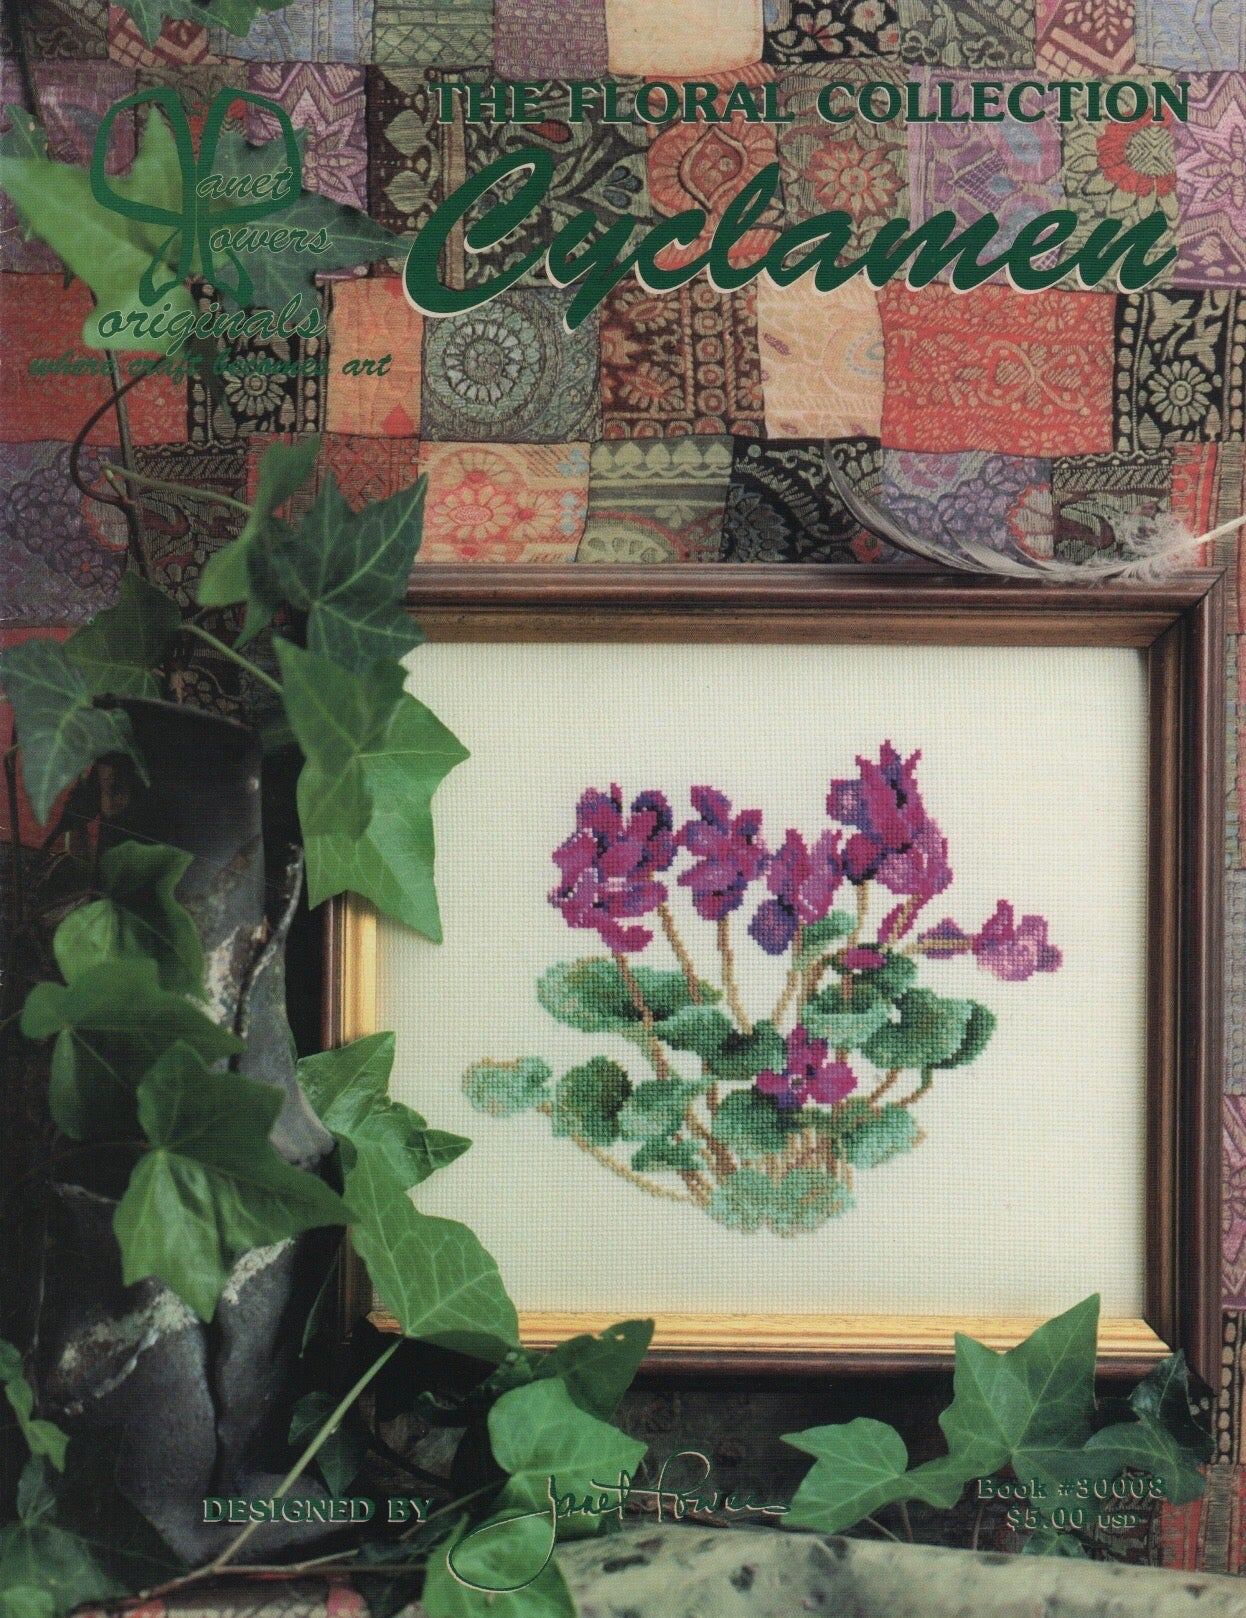 The Floral Collection - Cyclamen